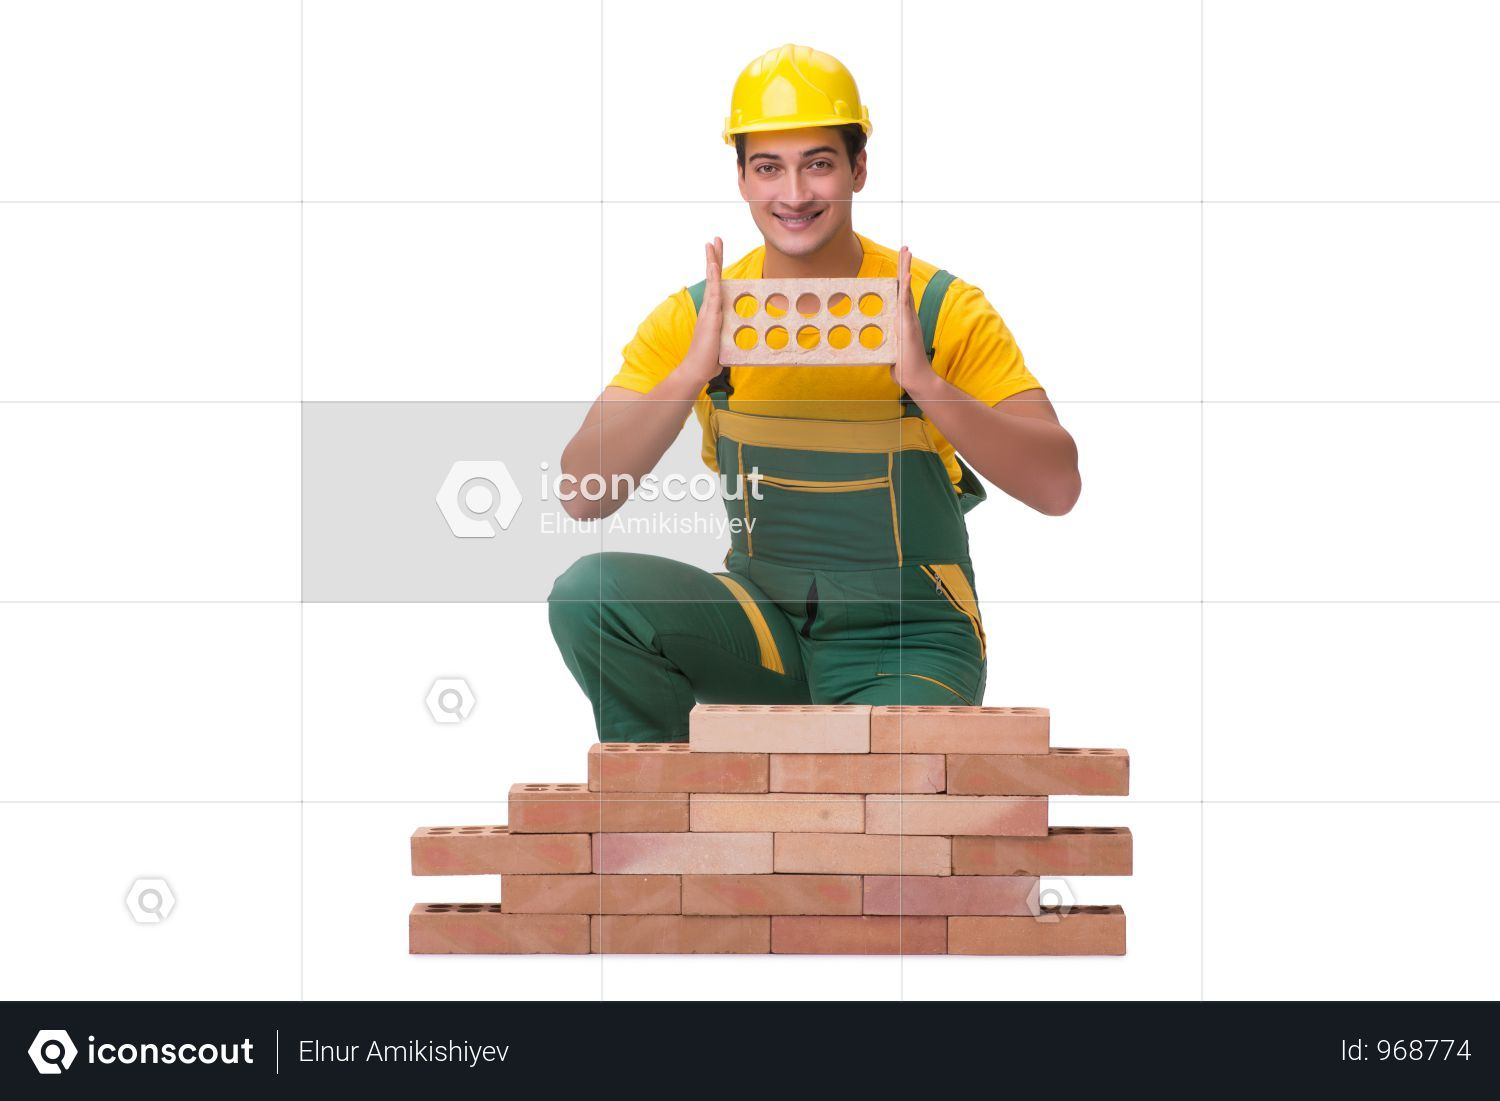 Premium The Handsome Construction Worker Building Brick Wall Photo Download In Png Jpg Format Brick Wall Construction Worker Photo Wall